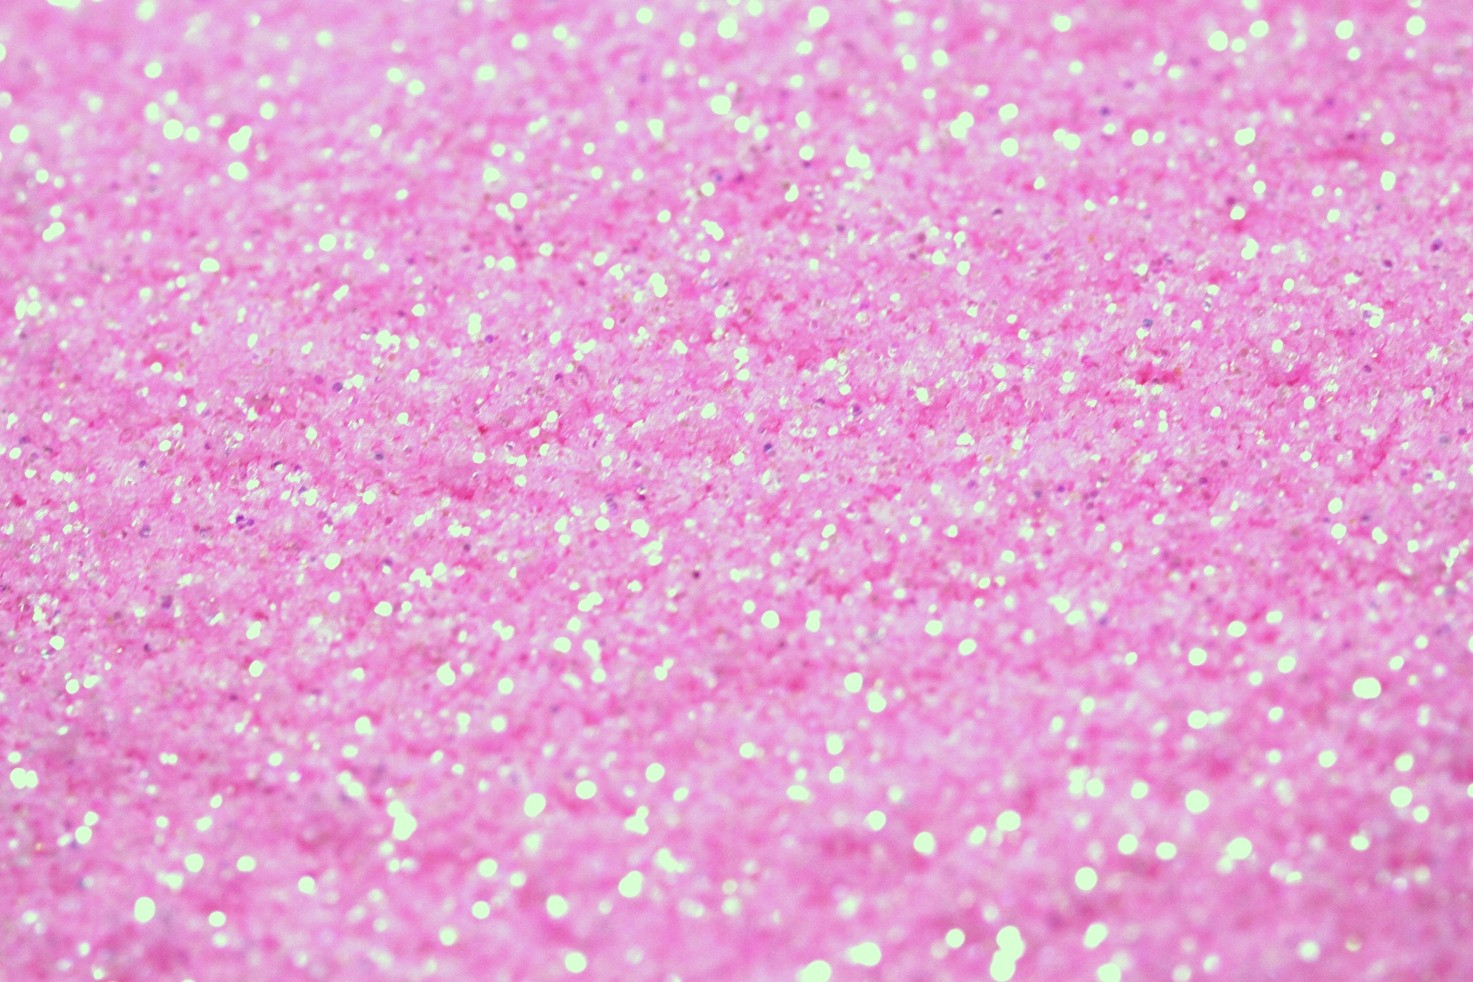 Pink Glitter Wallpaper   HD Wallpapers Pretty 1473x982